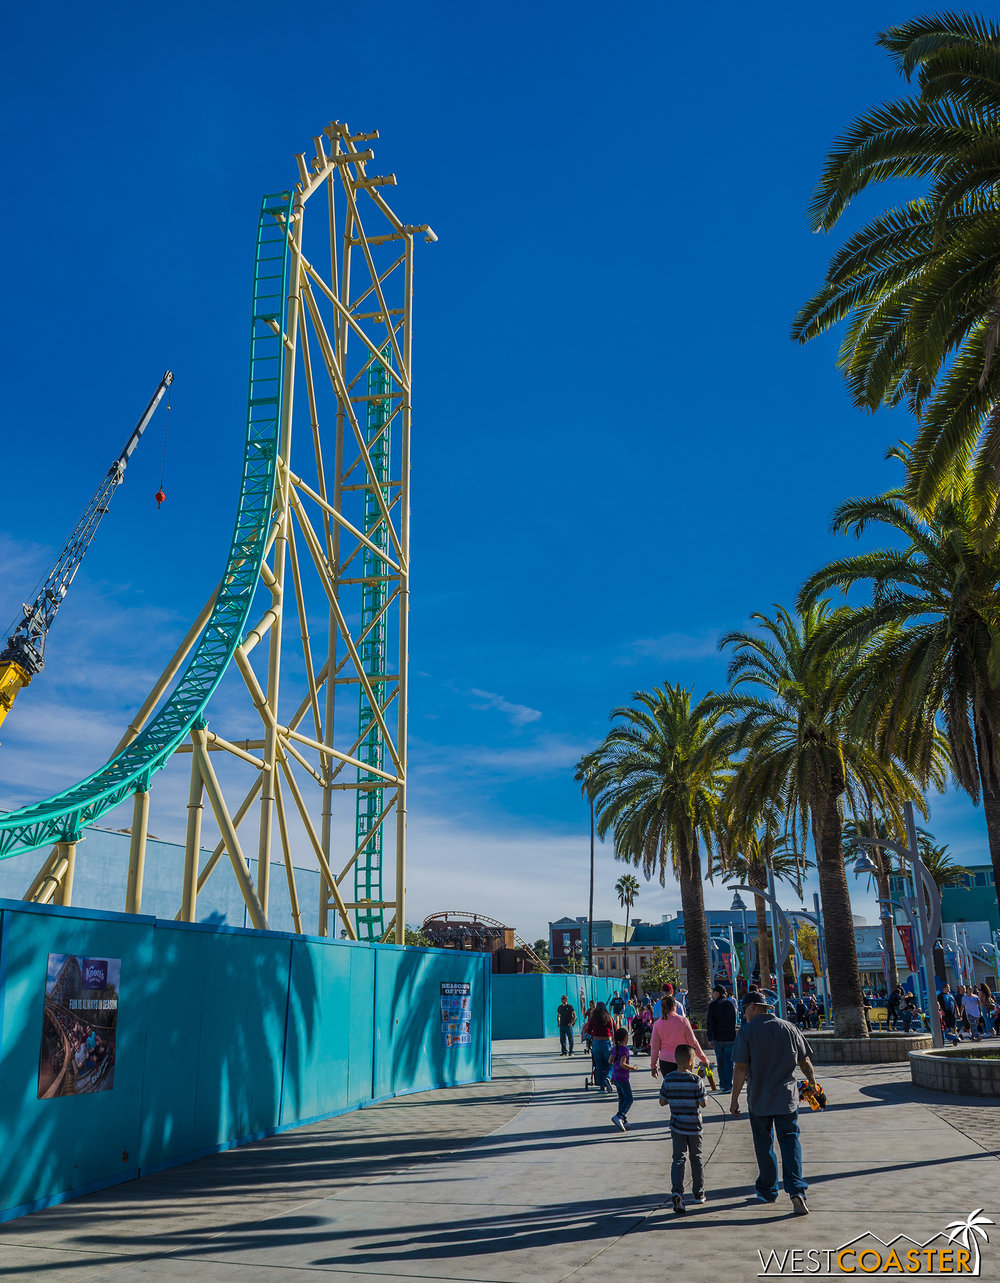 The palm trees provide scale for how towering this ride will be!